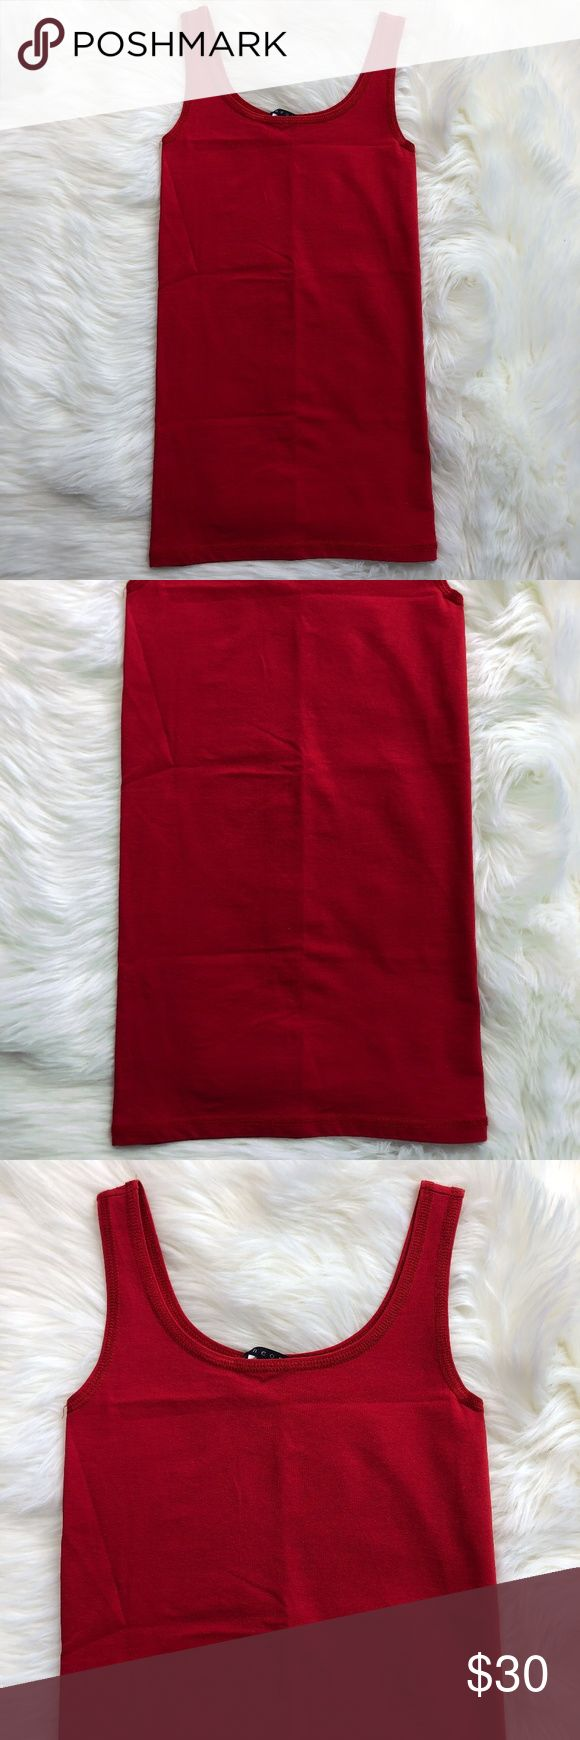 """THEORY Red Cami Tank Top One Size sleeveless Please see photos for exact condition SHIPS FAST Feel free to ask questions Measurements are approximate Please compare measurements to your own favorite clothing to help avoid having a return  chest 11"""" length 23.75""""  Thank you!  L19 Theory Tops Camisoles"""